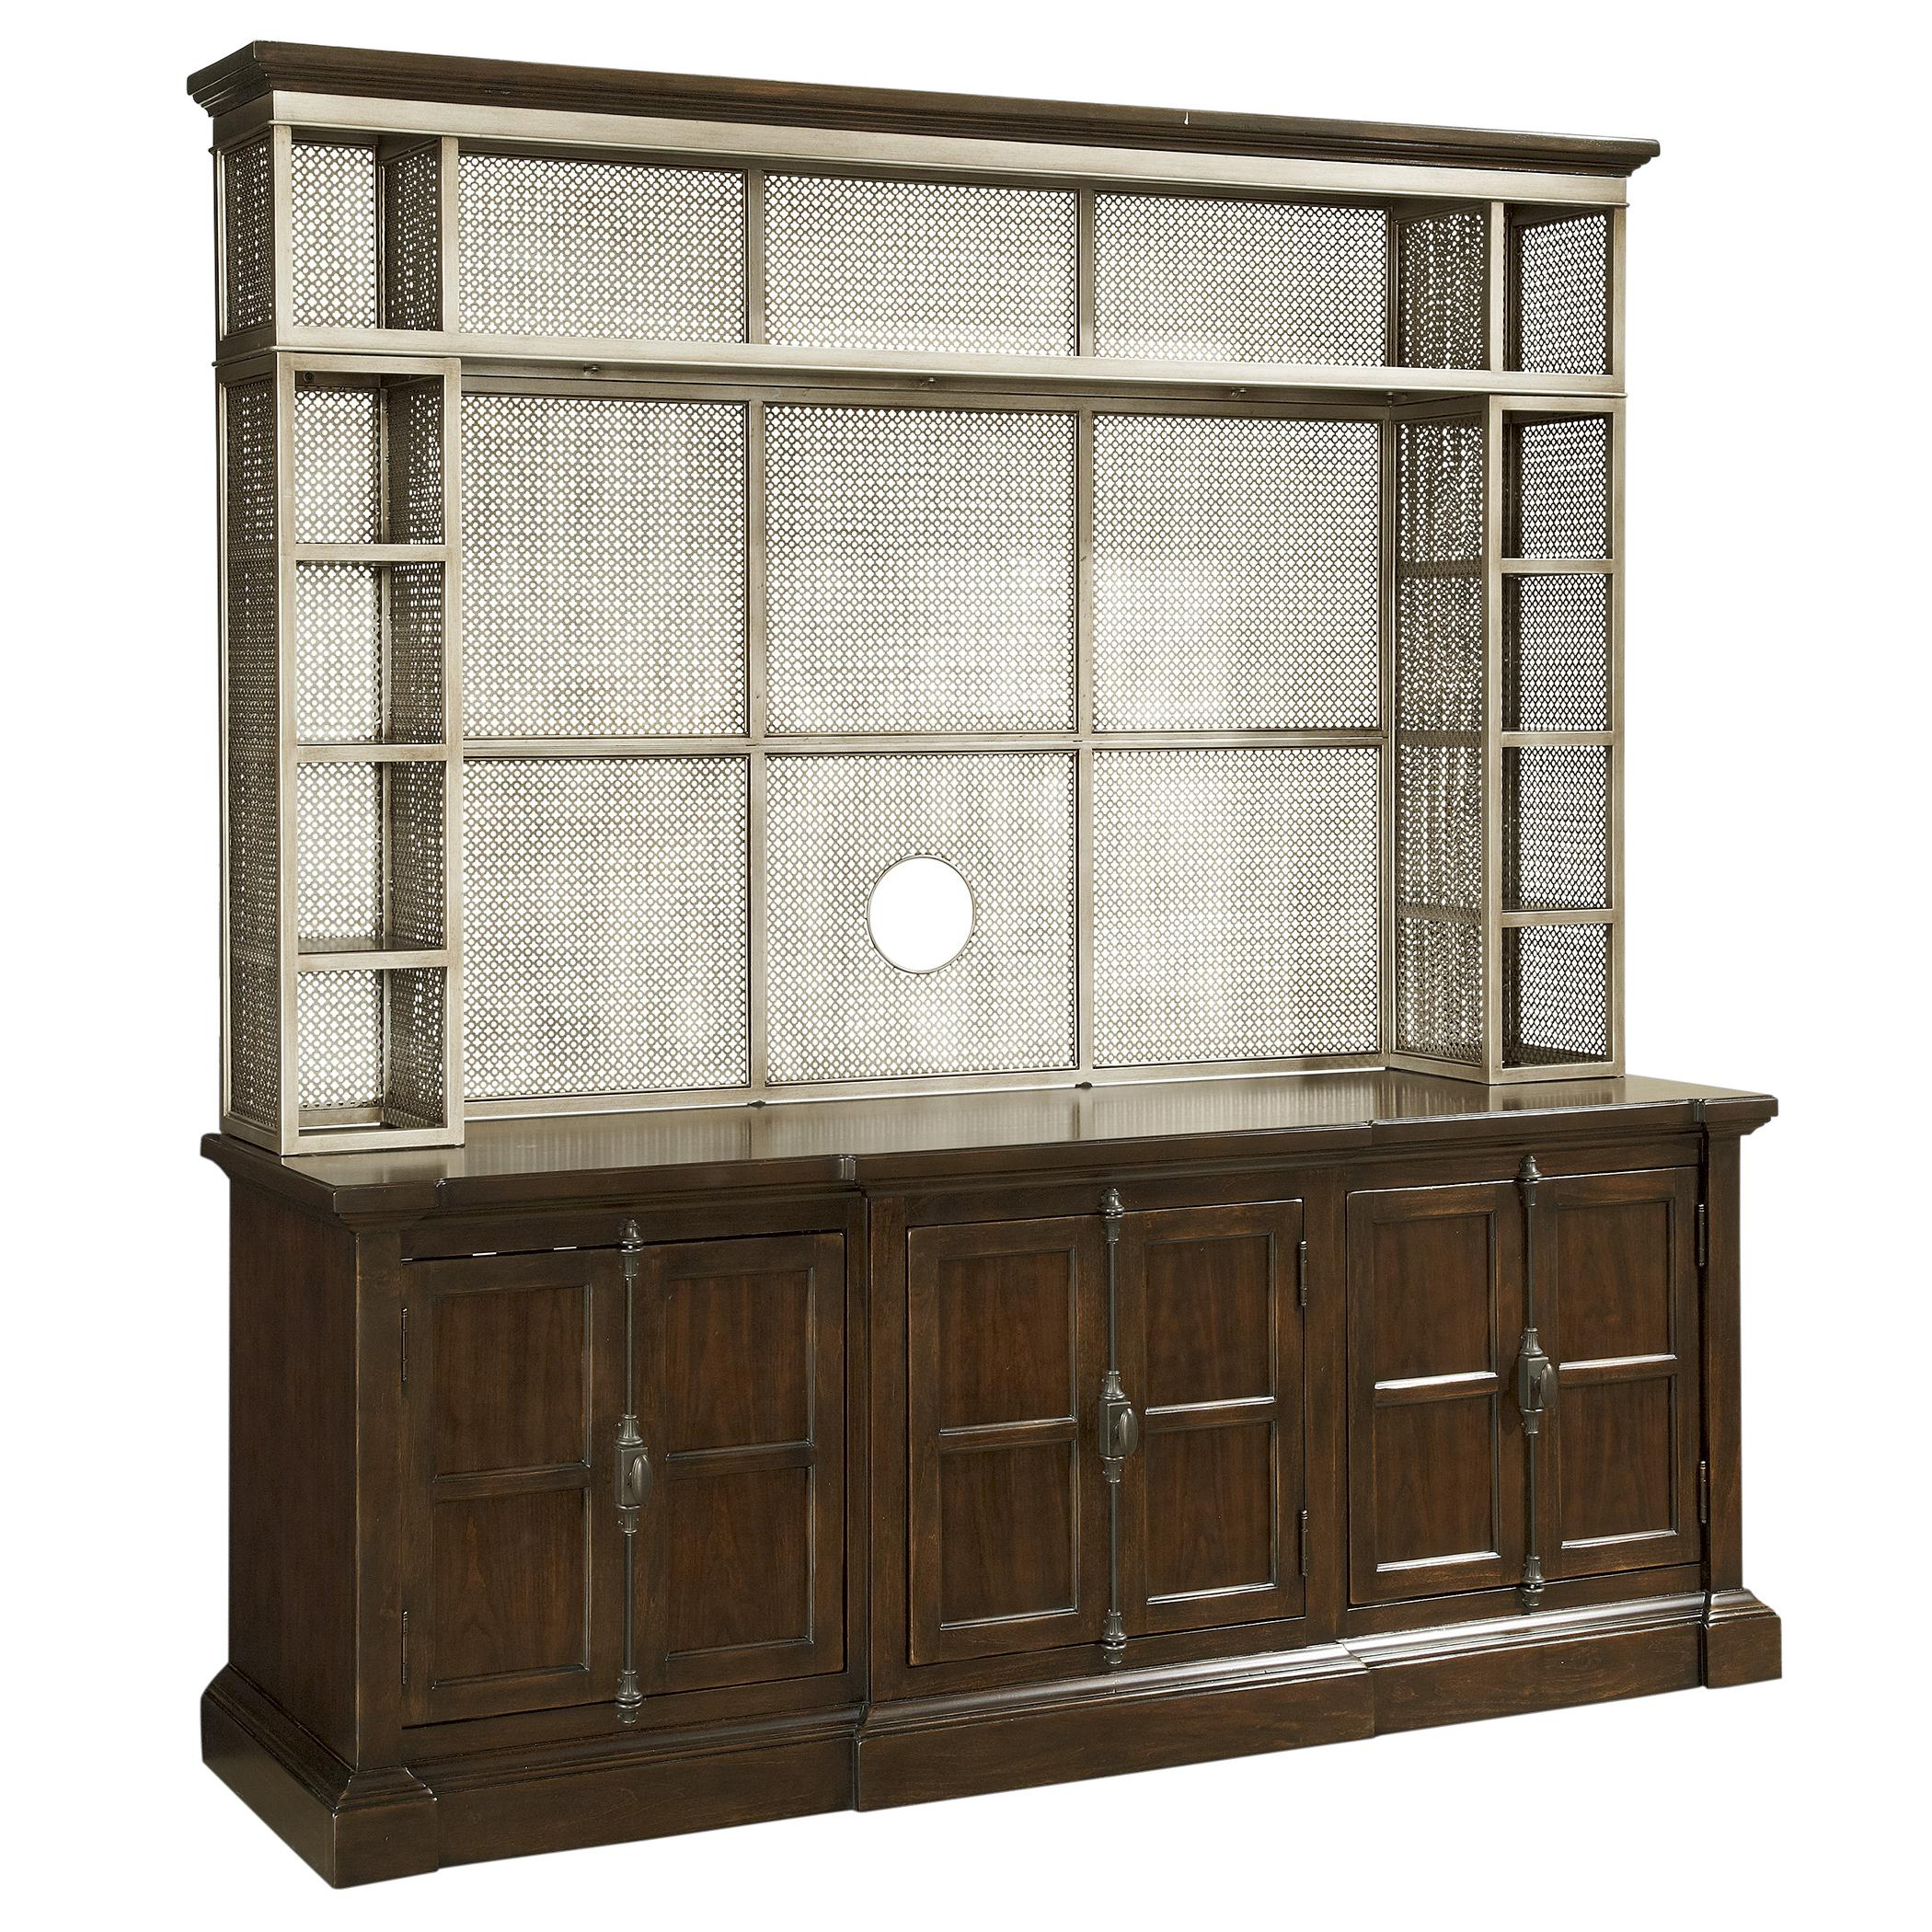 Morris Home Providence Providence 2 Piece Console and Hutch - Item Number: 356966C